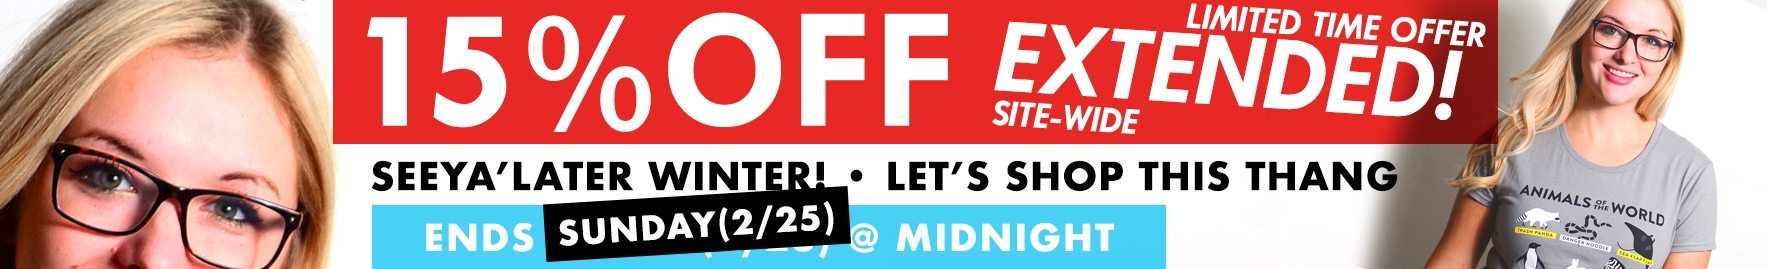 Sale - 15% Off Site Wide - Ends Friday February 23rd at Midnight!